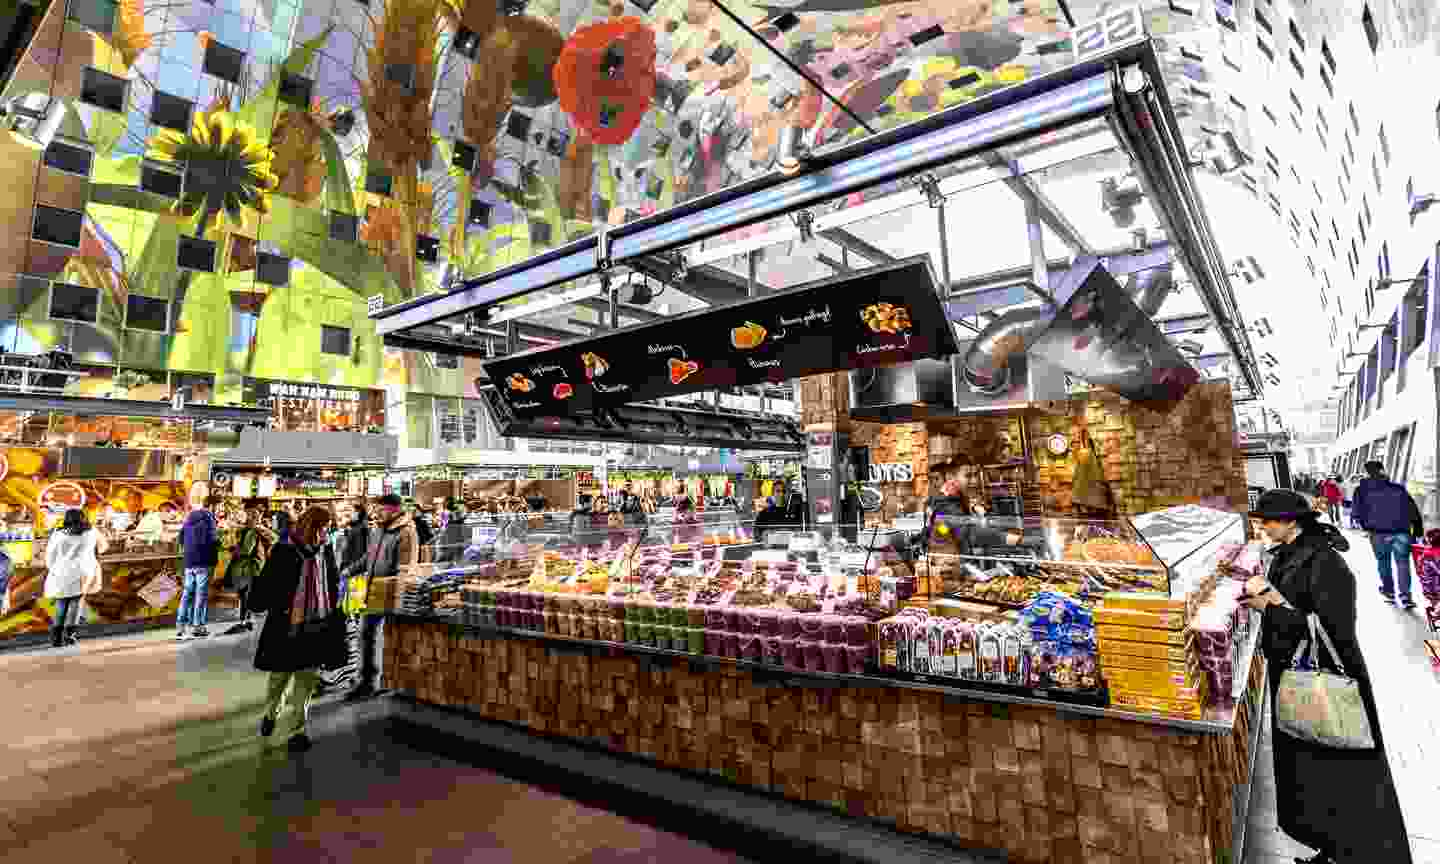 Food stall in the Markthal (Dreamstime)